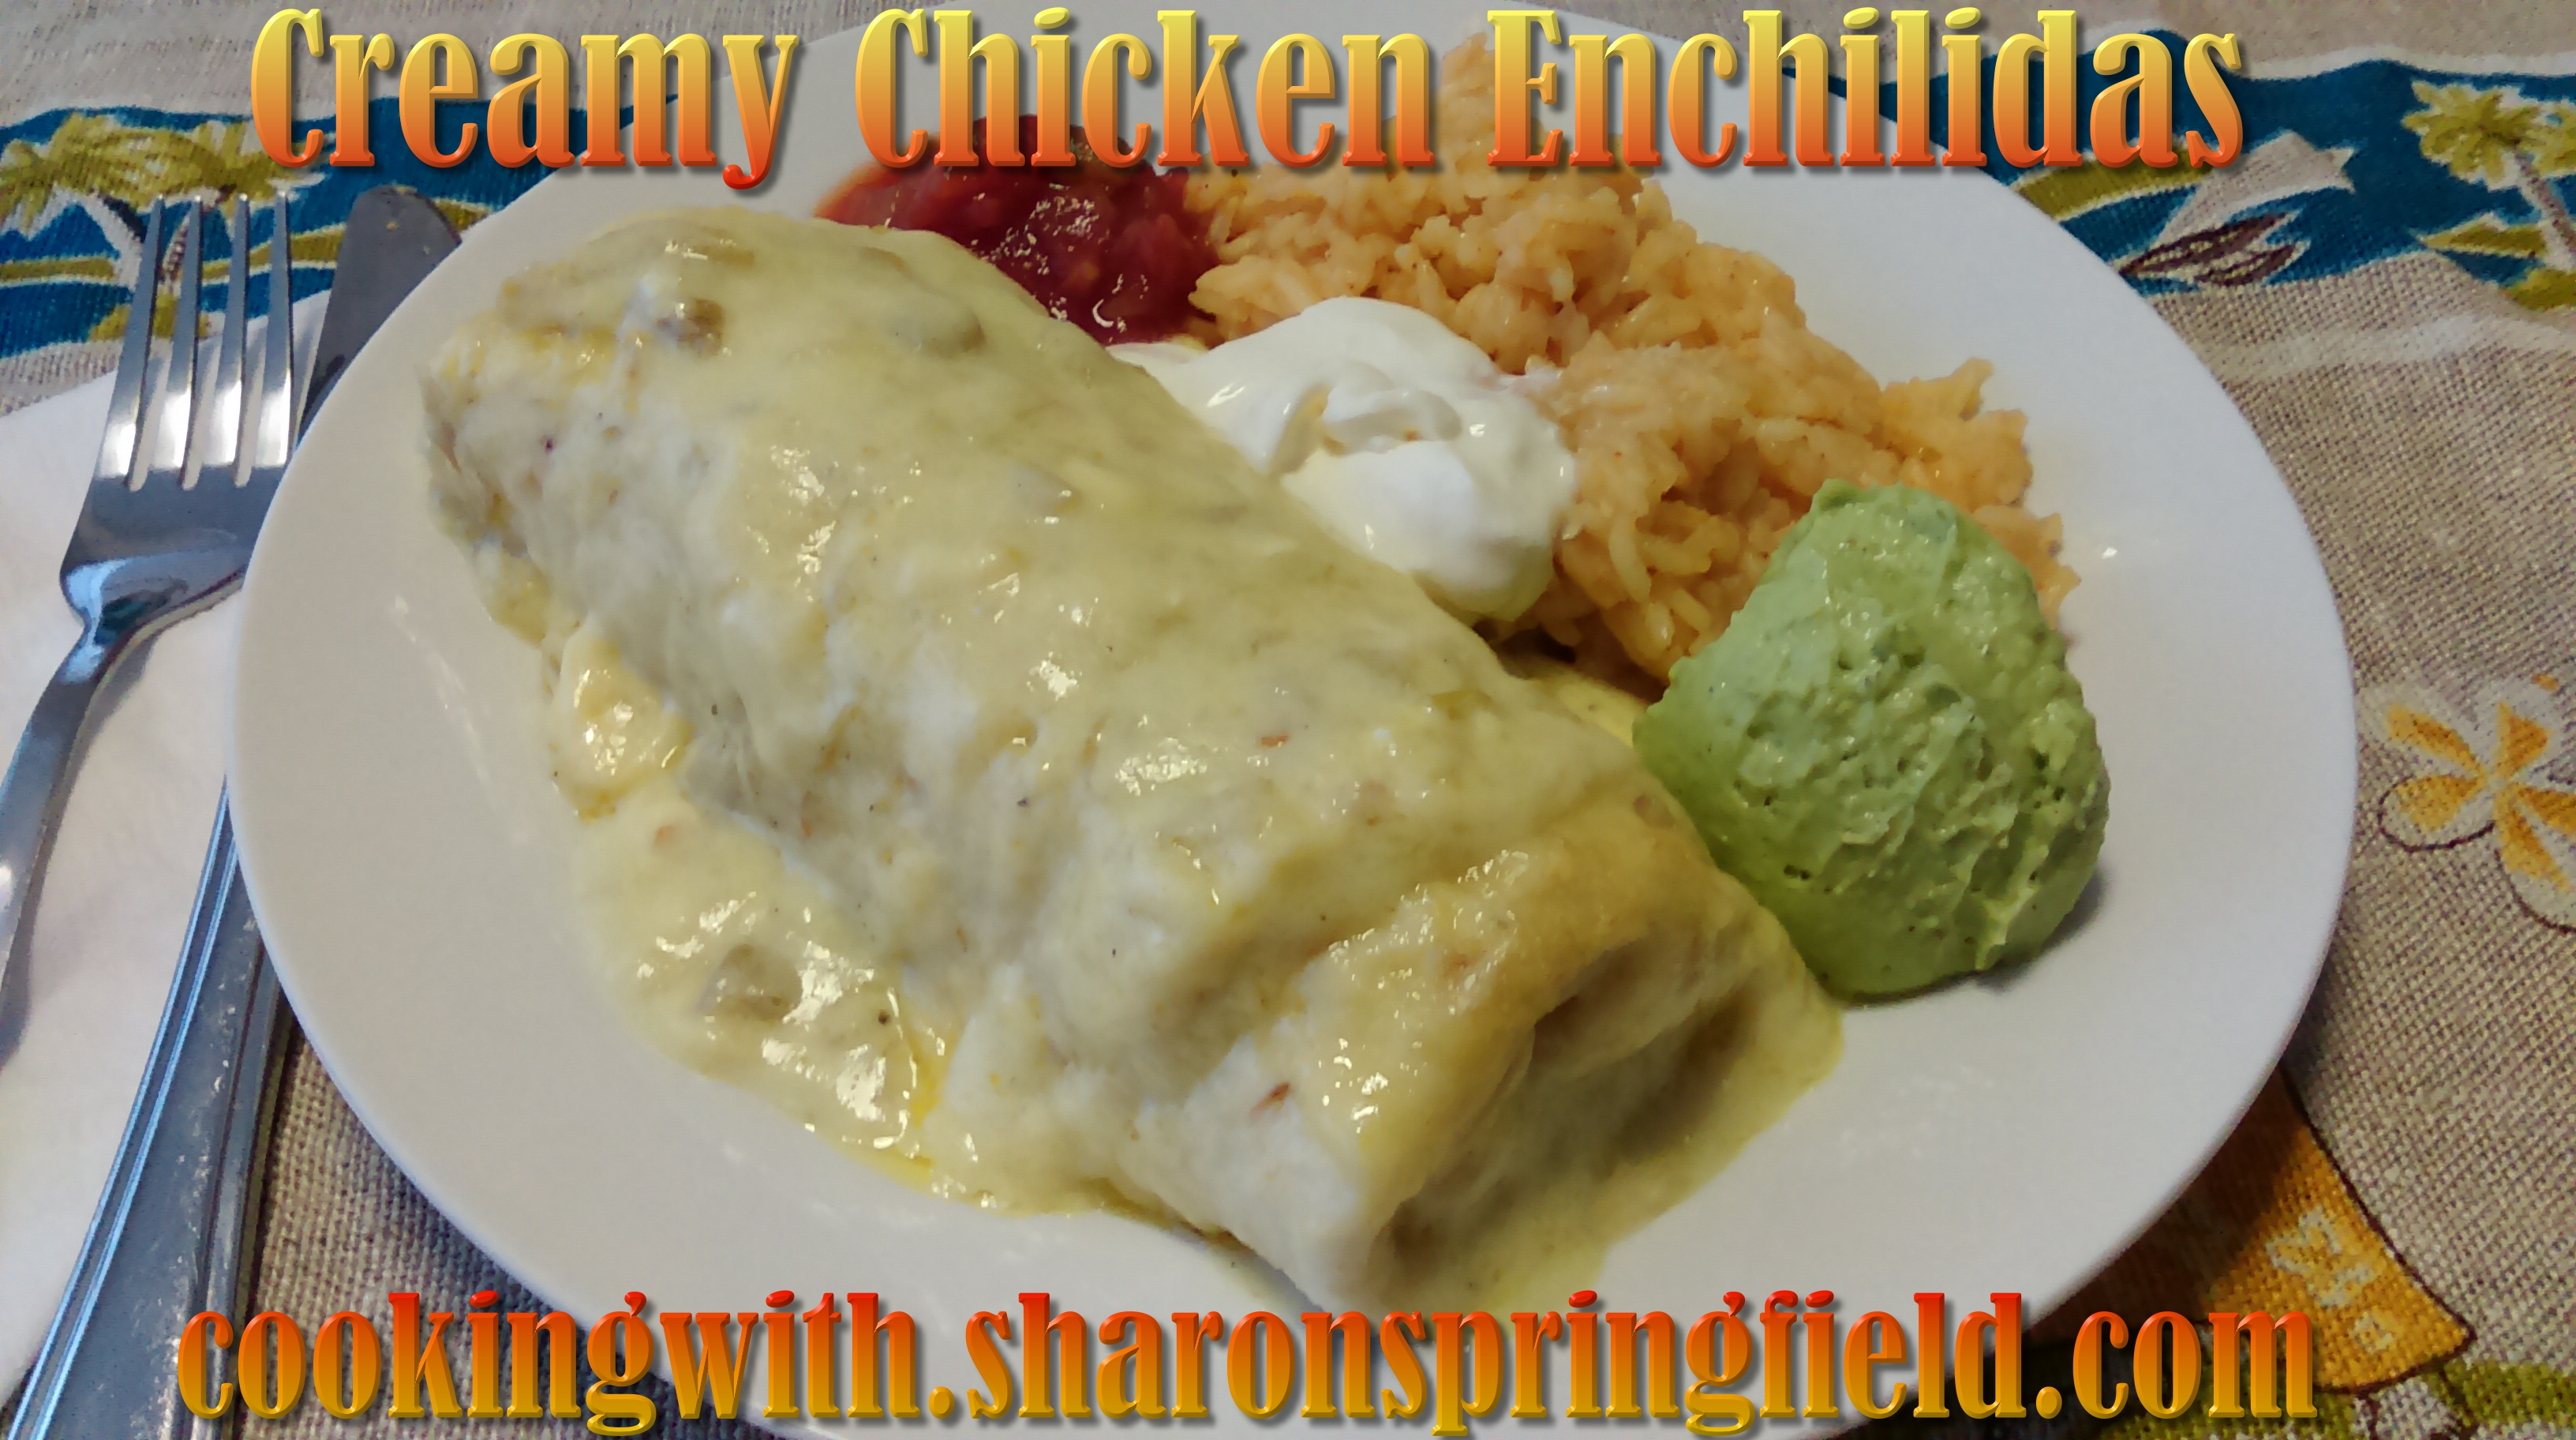 Chicken Enchilidas